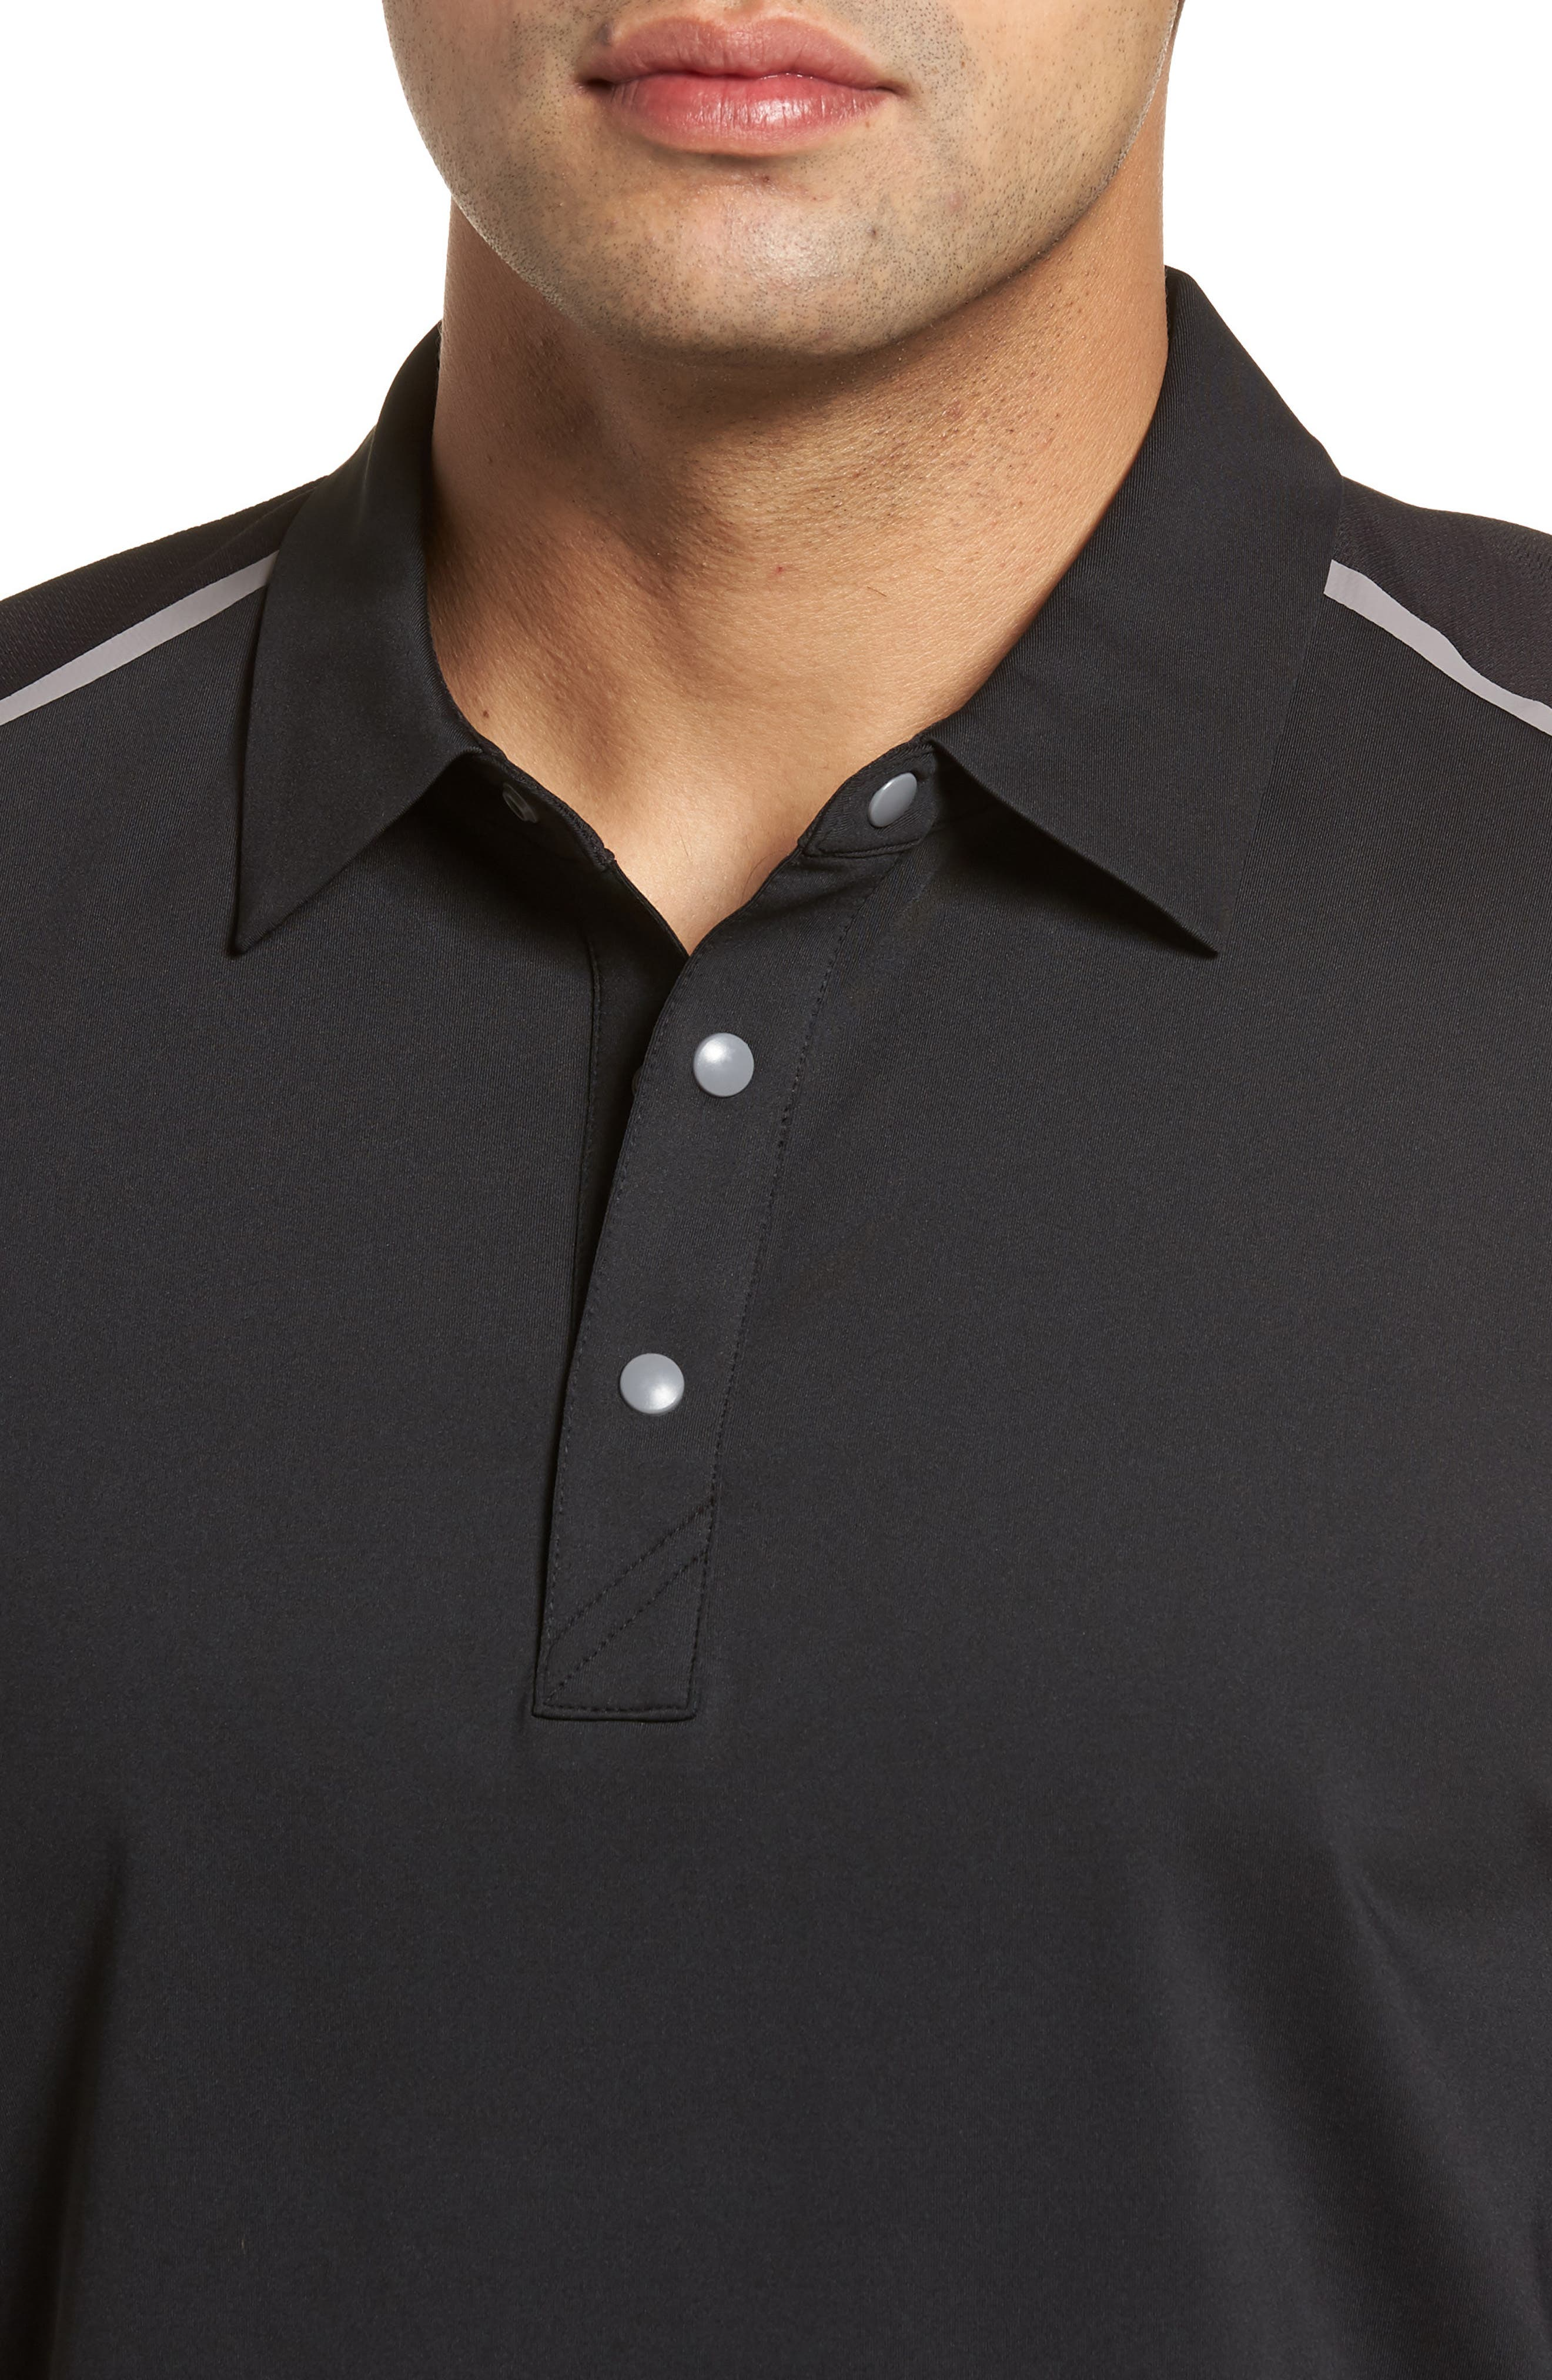 Fusion Classic Fit Polo,                             Alternate thumbnail 4, color,                             BLACK